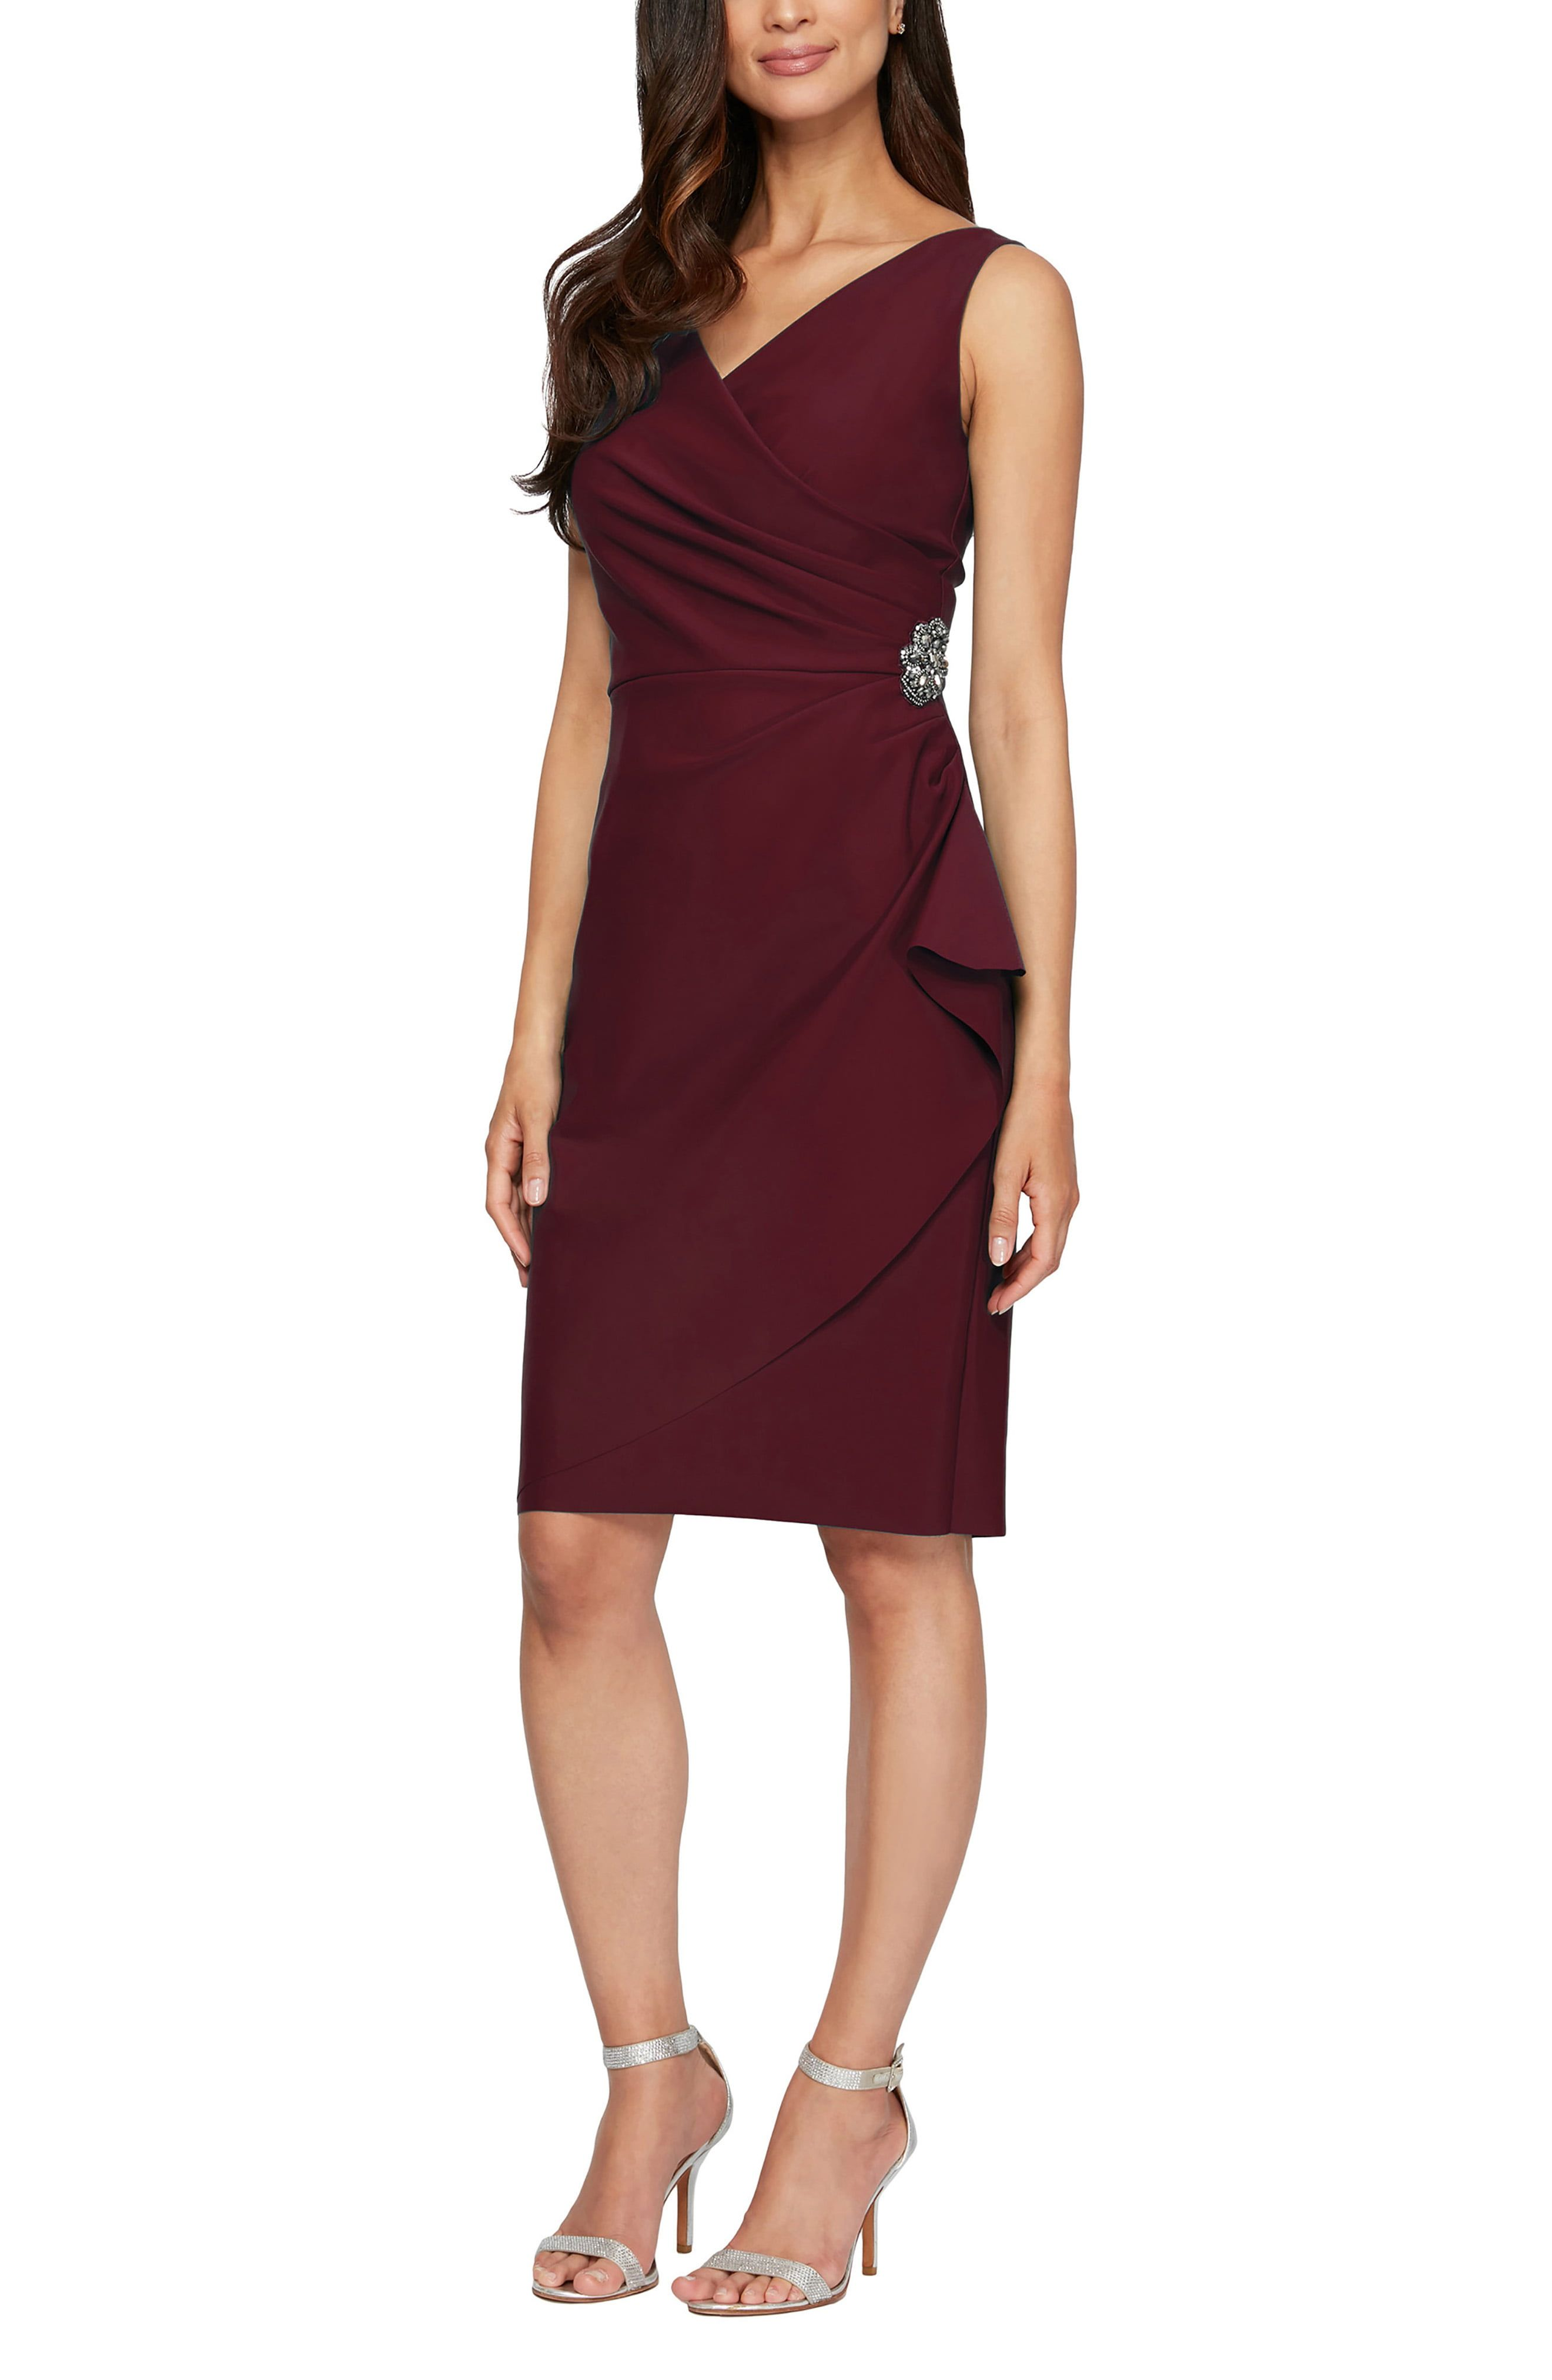 Elegant ruching gathers to a sparkling ornament at the side to create the faux-wrap silhouette of a chic dress with subtle compression designed to flatter. Style Name:Alex Evenings Side Ruched Cocktail Dress (Regular & Petite). Style Number: 1123772_26. Available in stores.